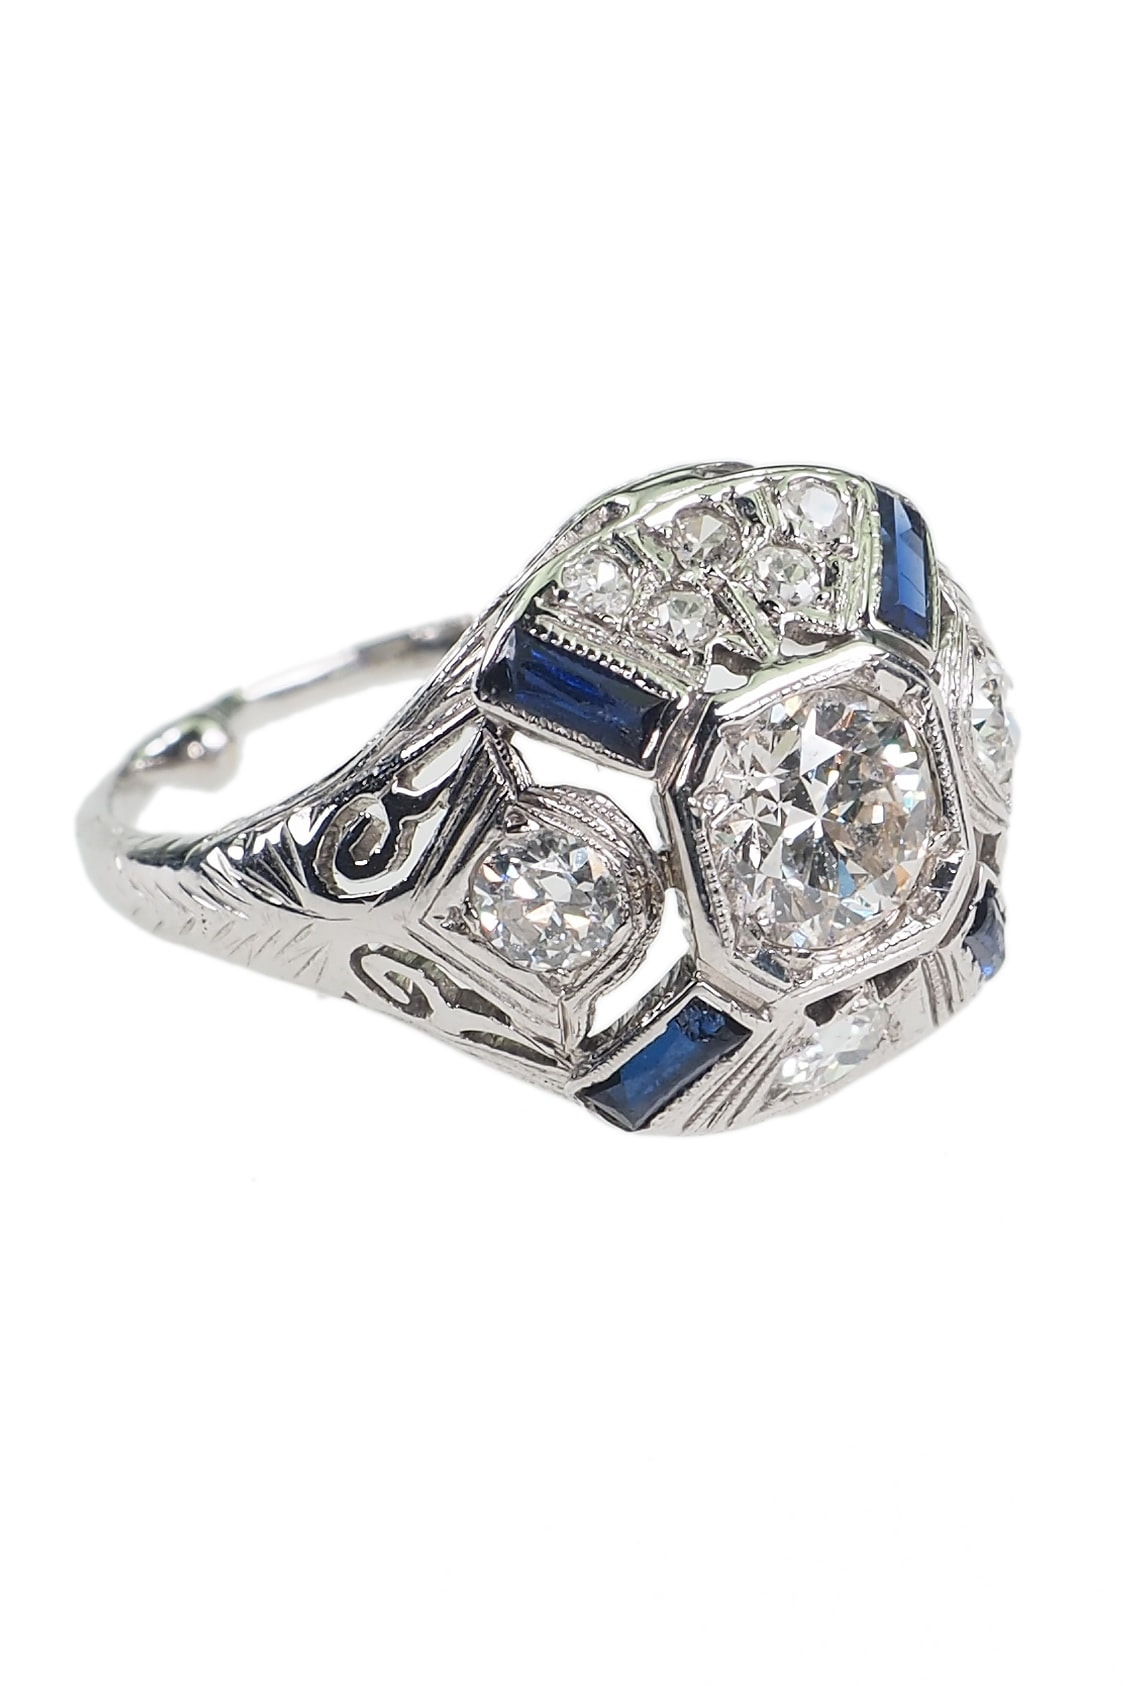 ring-0598a